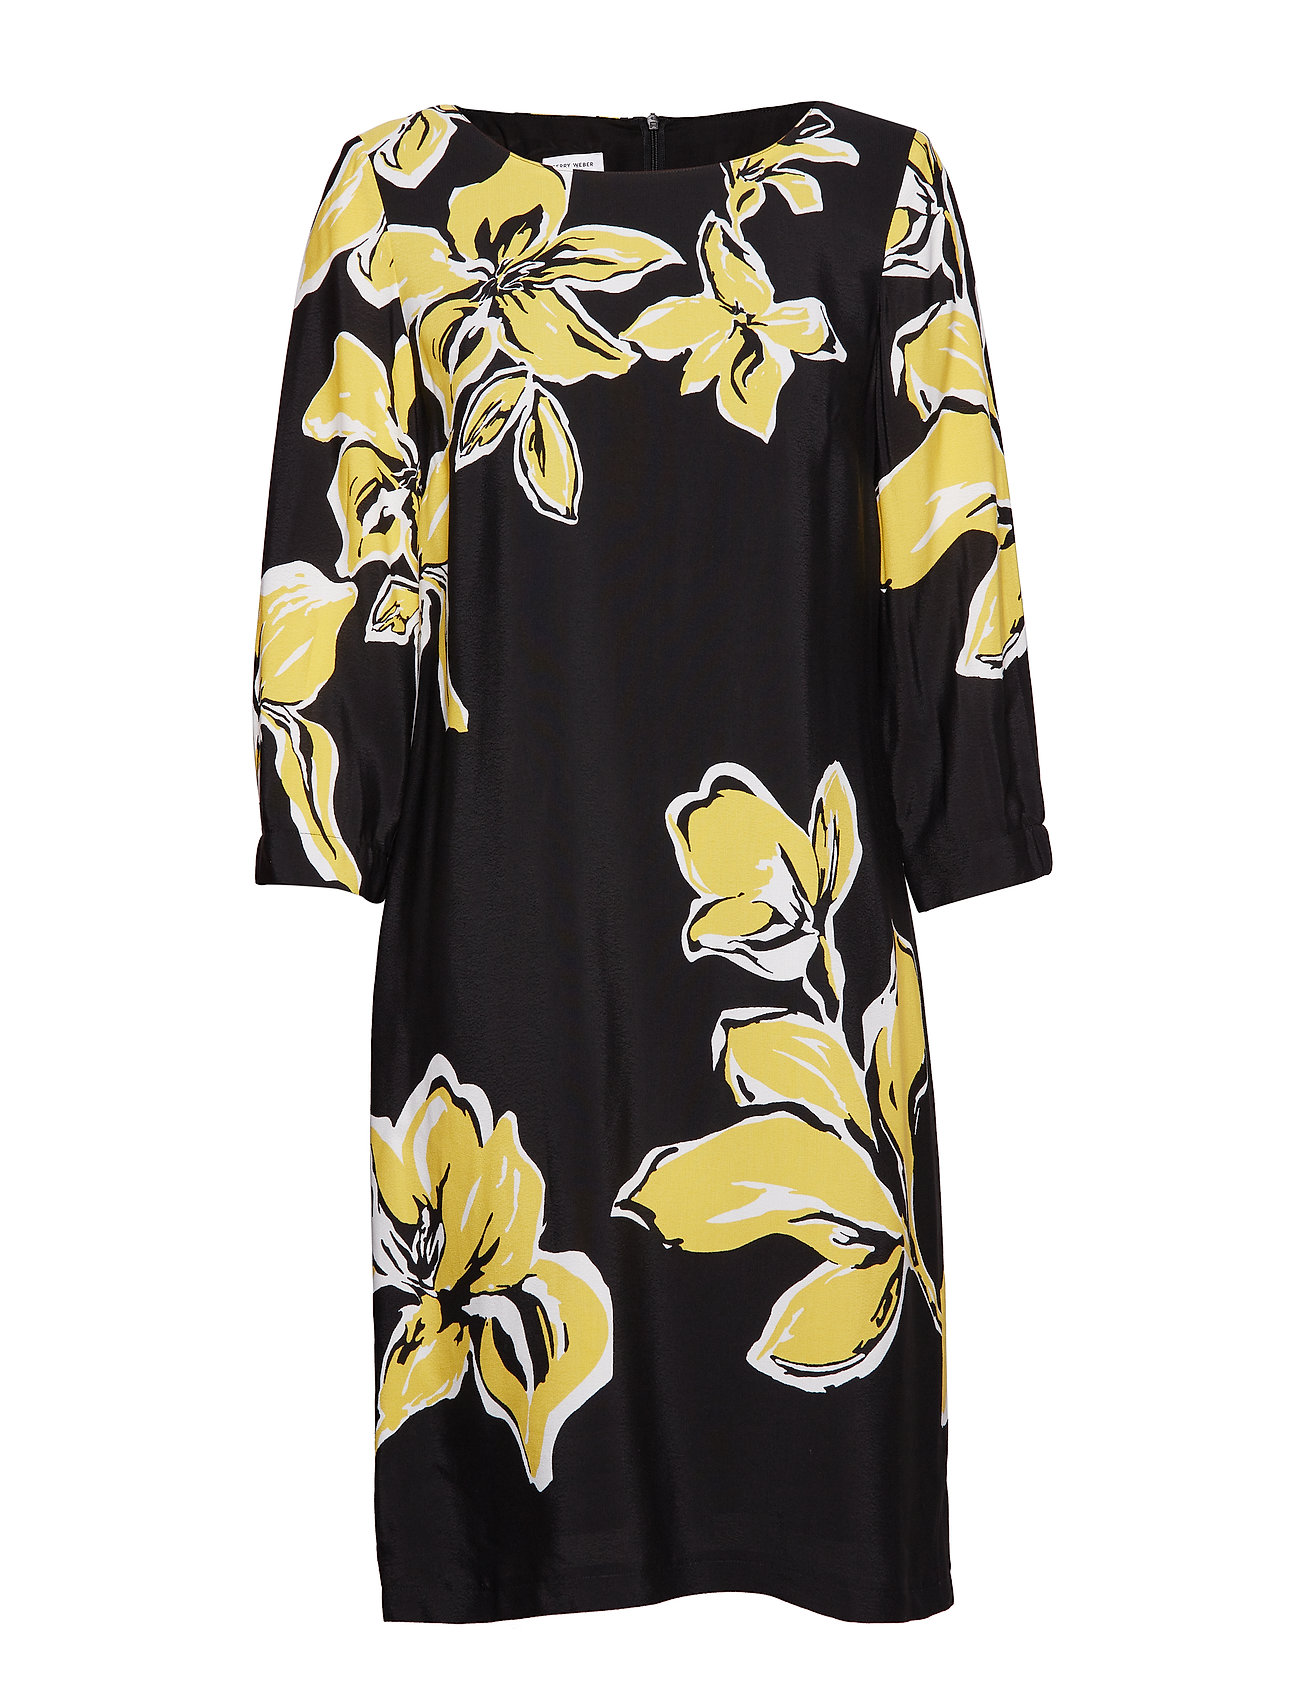 Gerry Weber DRESS WOVEN FABRIC - BLACK/YELLOW PRINT